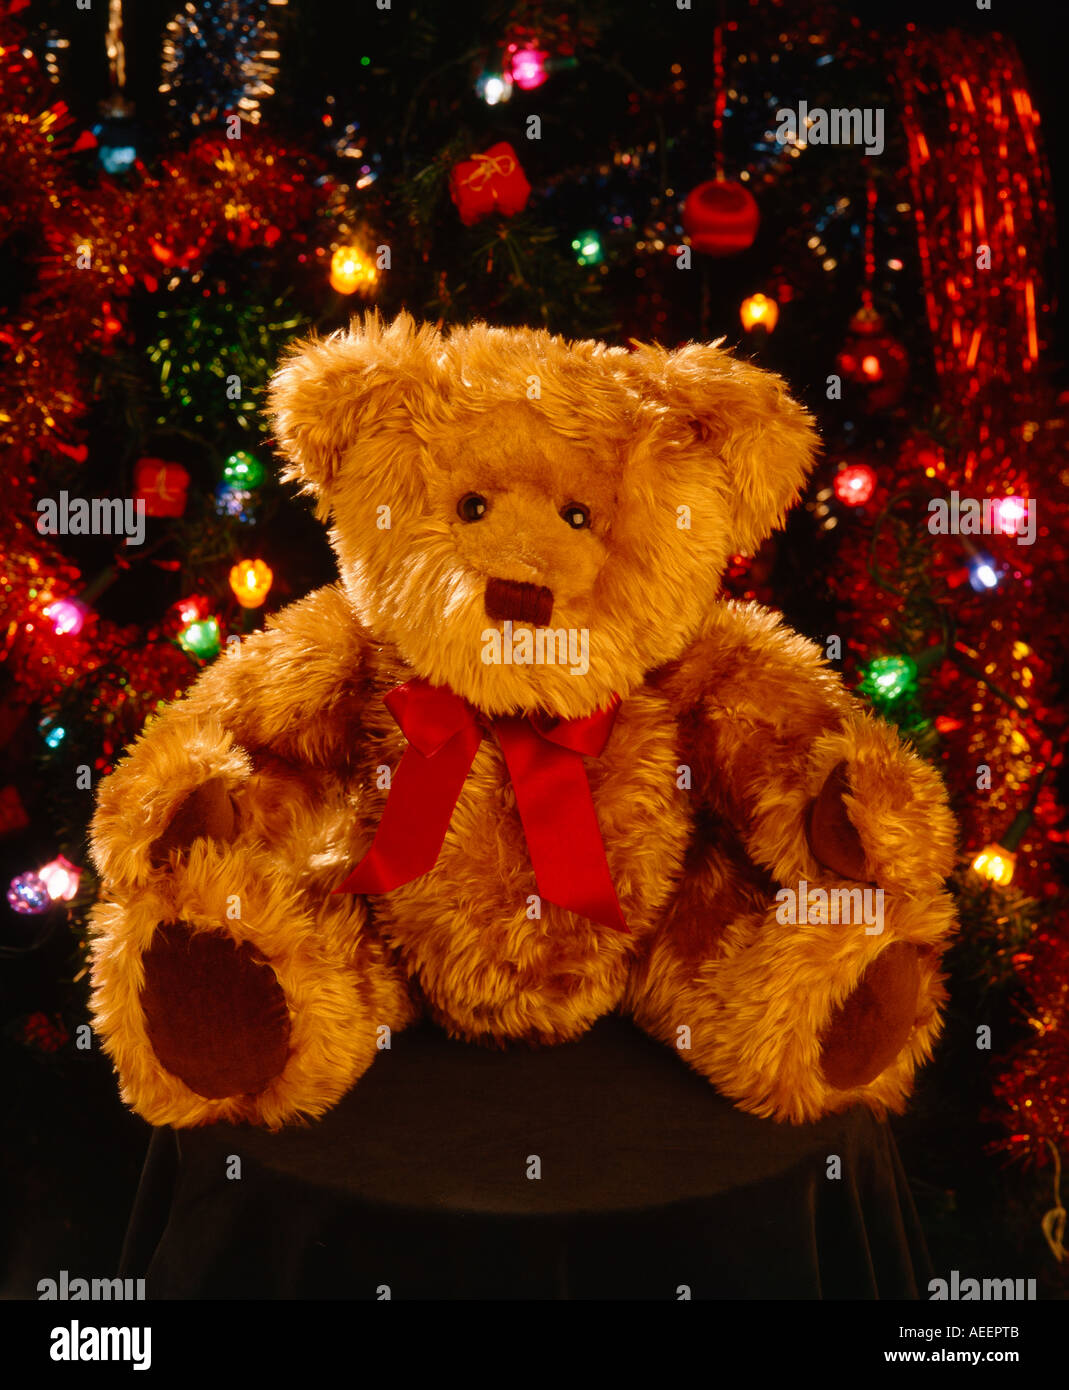 teddy bear doll sitting in front of christmas decorations and colored lights - Bear Christmas Decorations